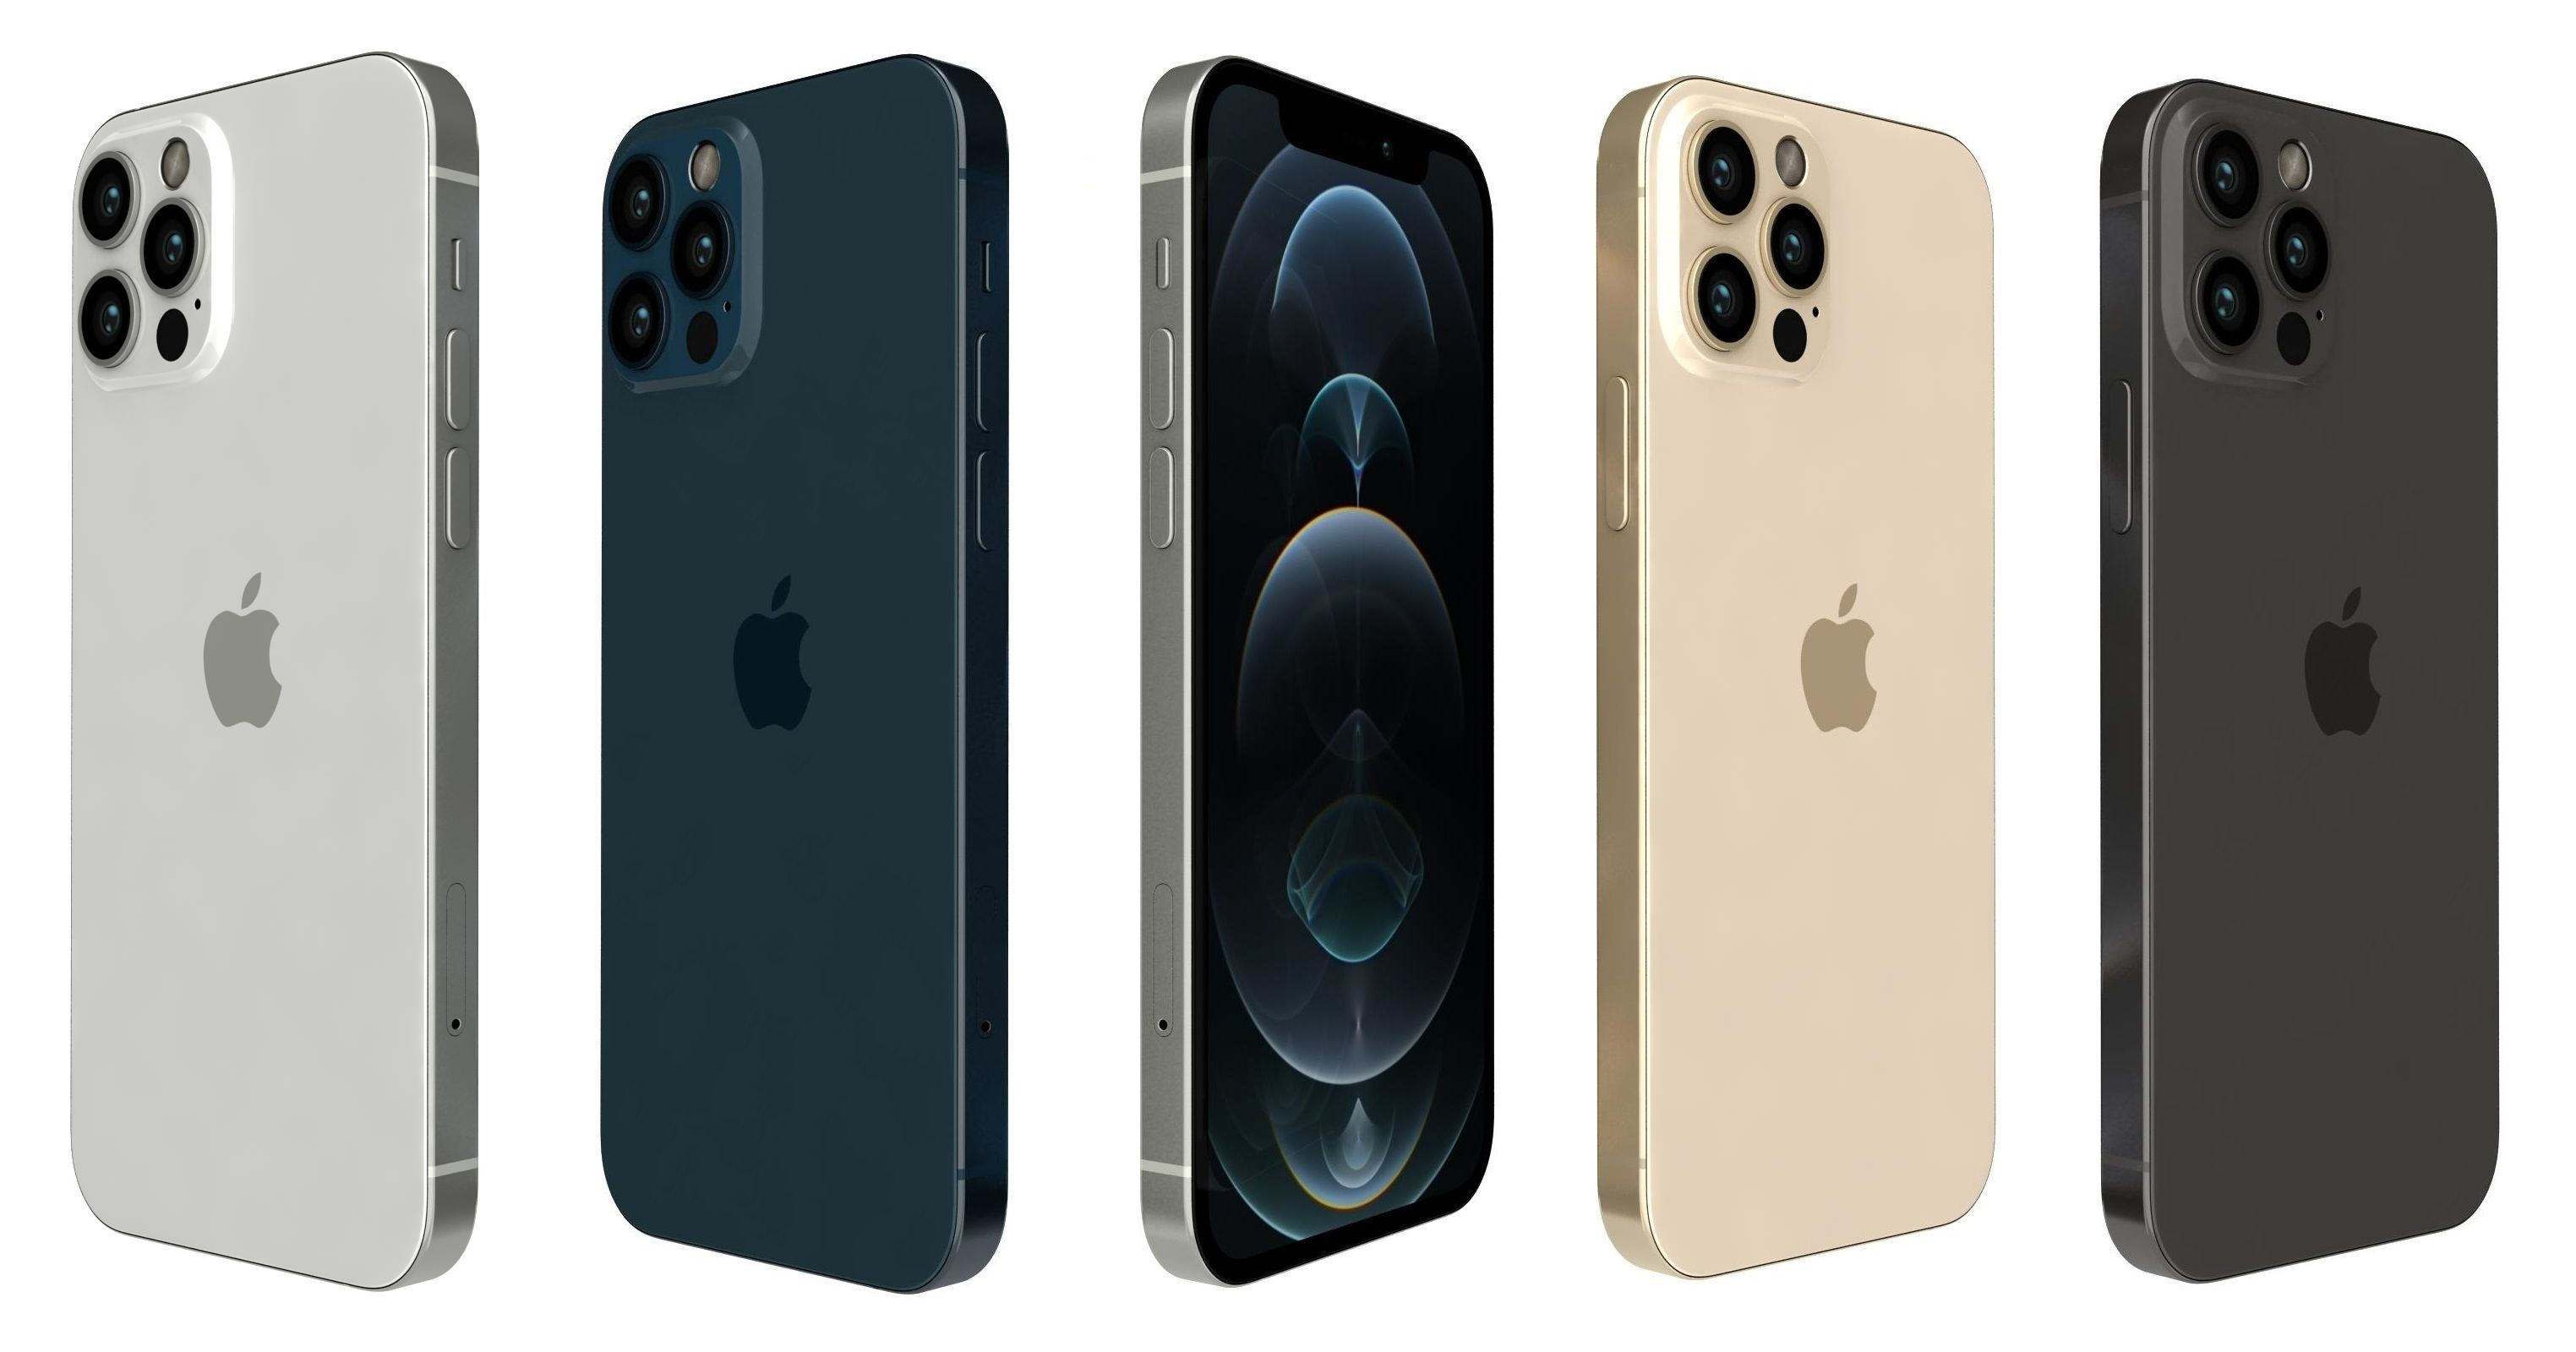 3D Apple iPhone 12 Pro All Colors | CGTrader